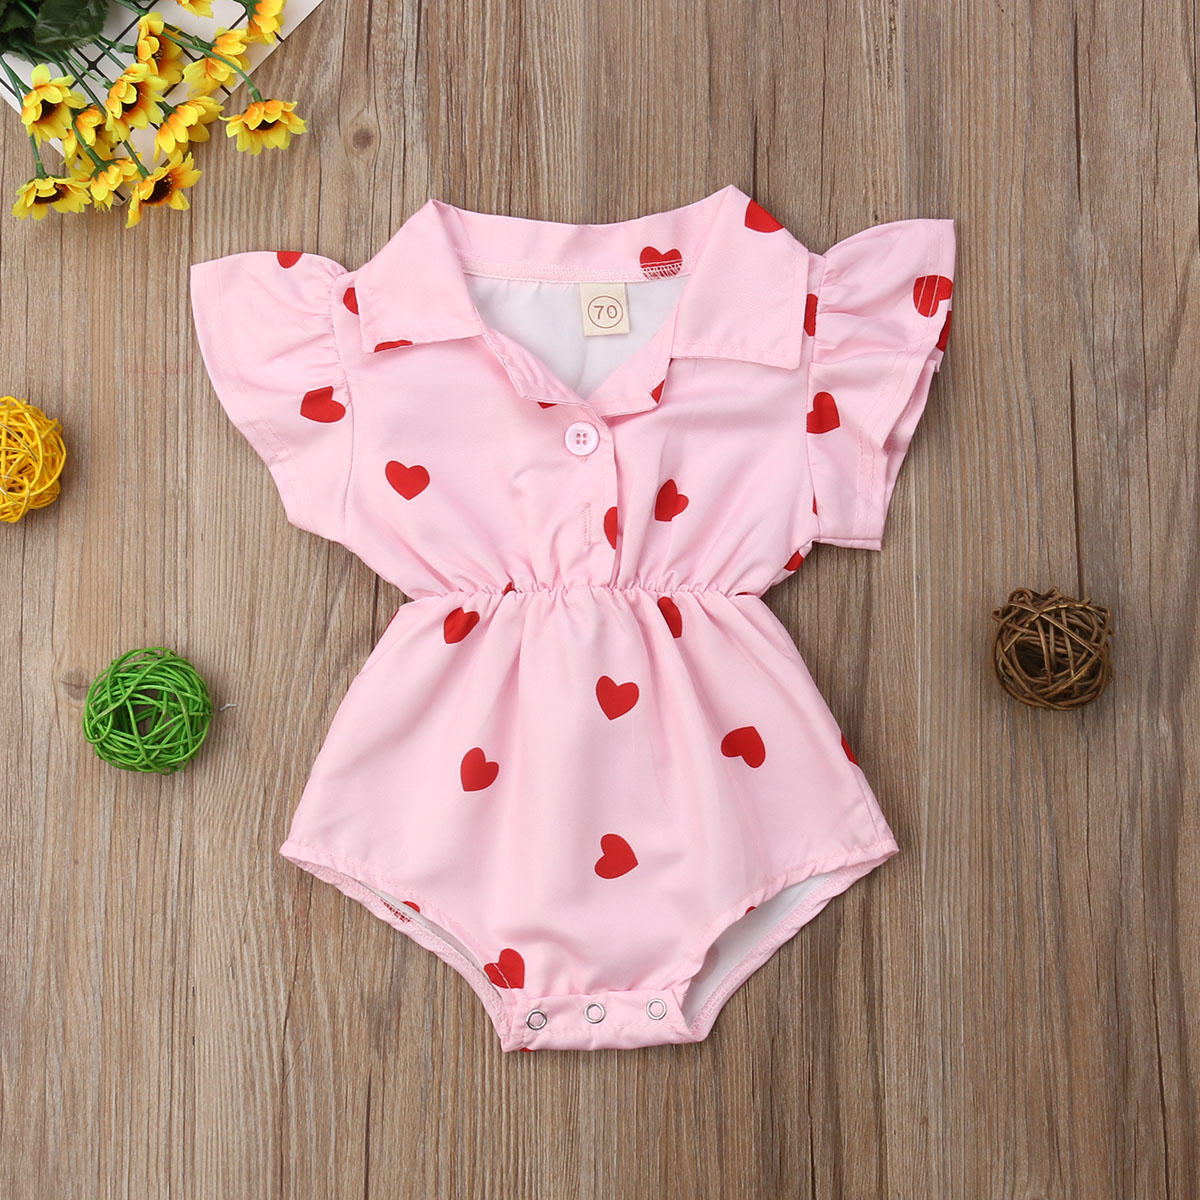 Summer Infant Newborn Clothing Leopard Jumpsuits&Rompers & Kids Clothing Heart Ruffles Baby Girls Rompers Valentine's Day Clothes For Baby G